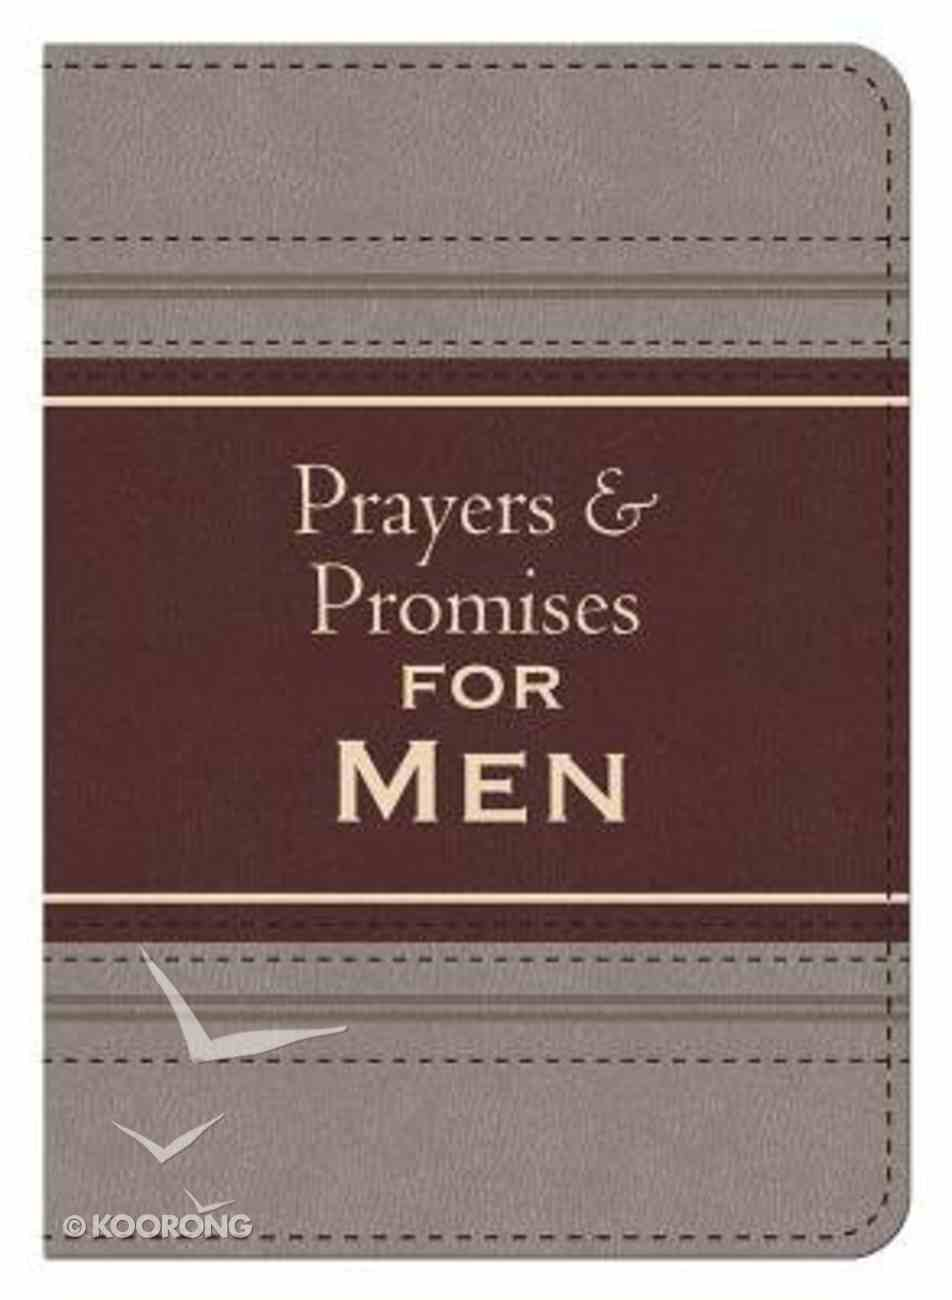 Prayers and Promises For Men (Kjv) Imitation Leather